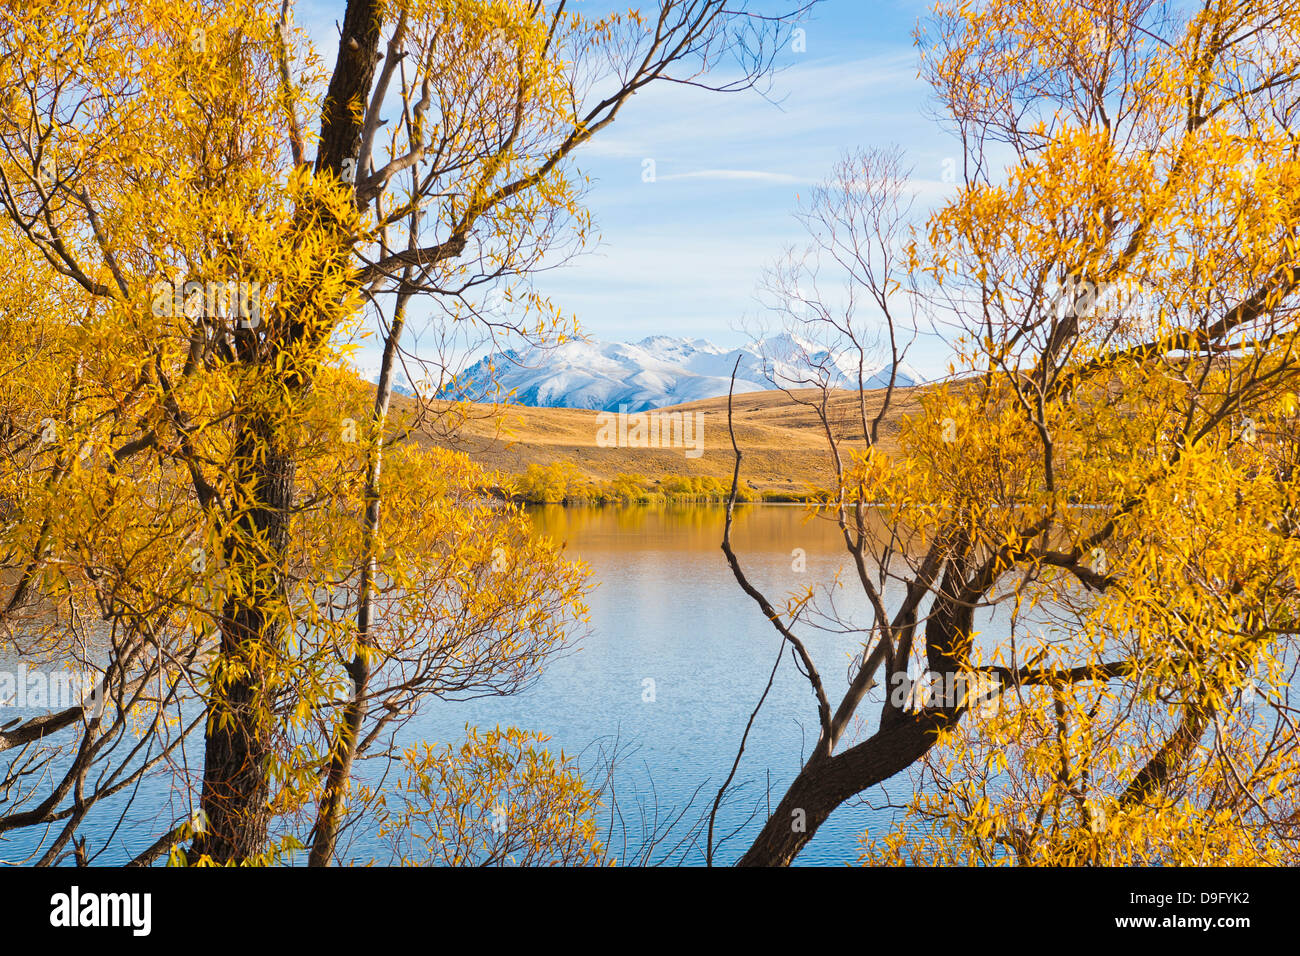 Snow capped mountains and autumn trees, Lake Alexandrina, Canterbury Region, South Island, New Zealand - Stock Image